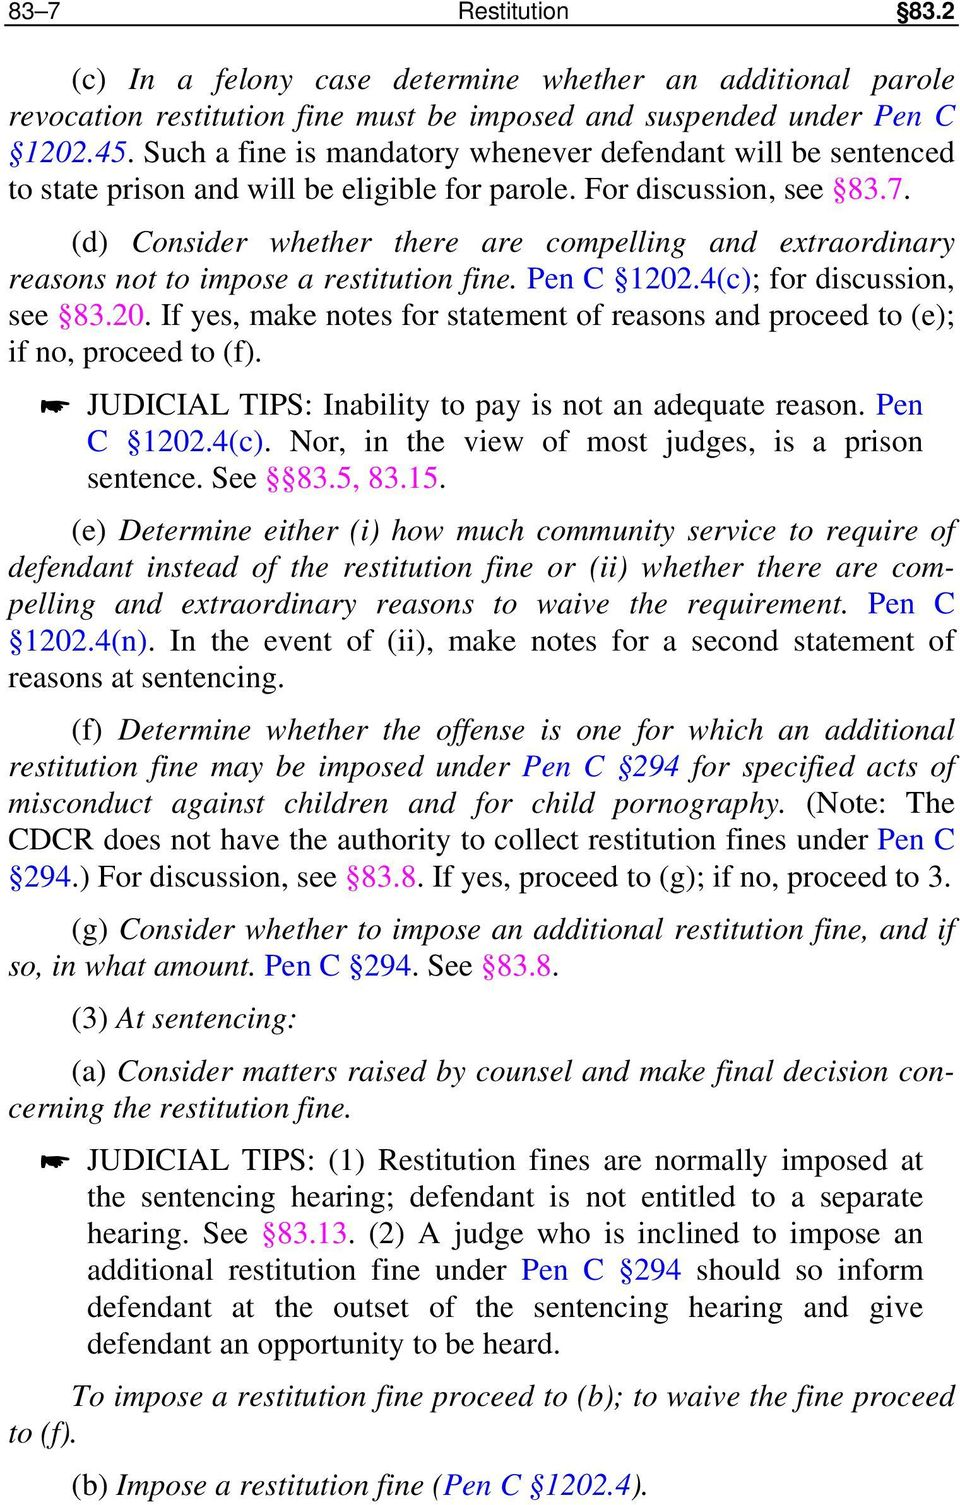 (d) Consider whether there are compelling and extraordinary reasons not to impose a restitution fine. Pen C 1202.4(c); for discussion, see 83.20. If yes, make notes for statement of reasons and proceed to (e); if no, proceed to (f).